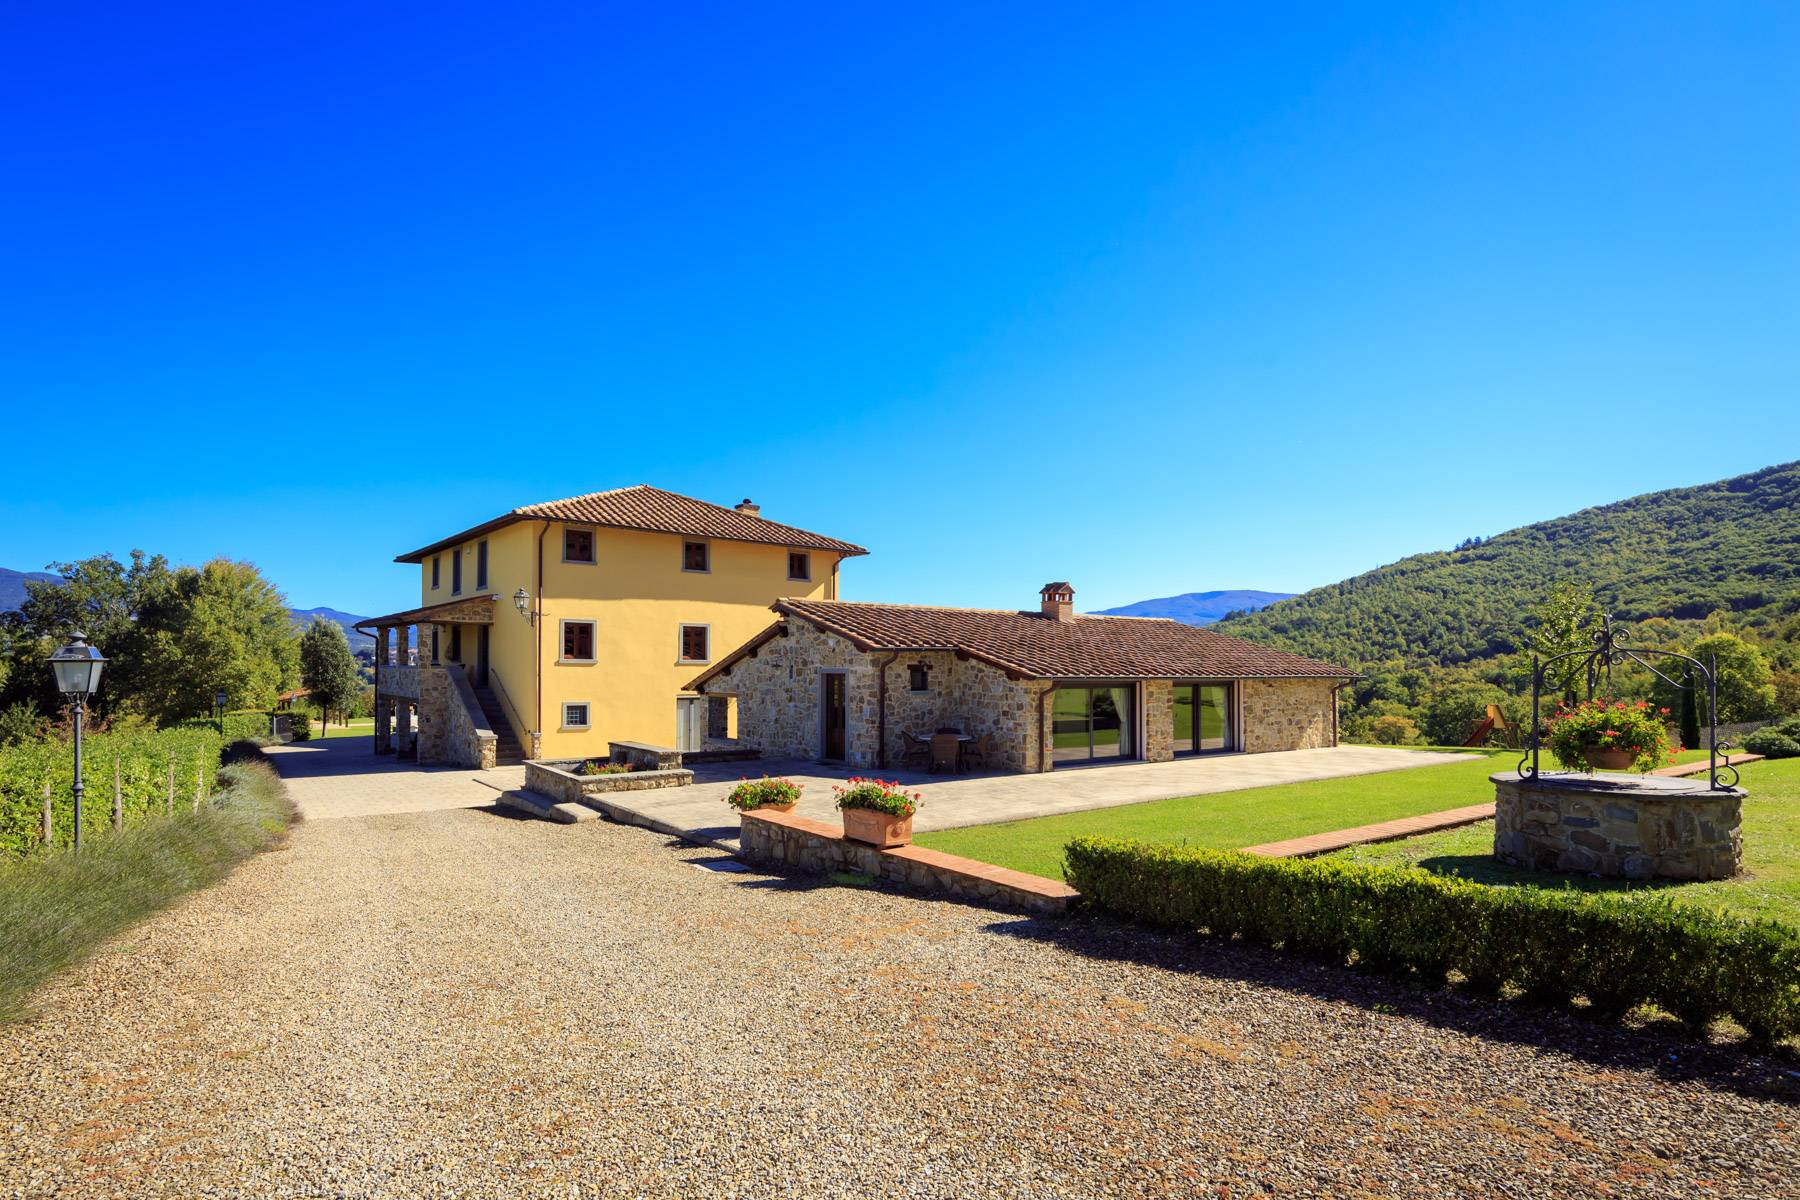 Marvelous estate with views over the Casentino valley - 2